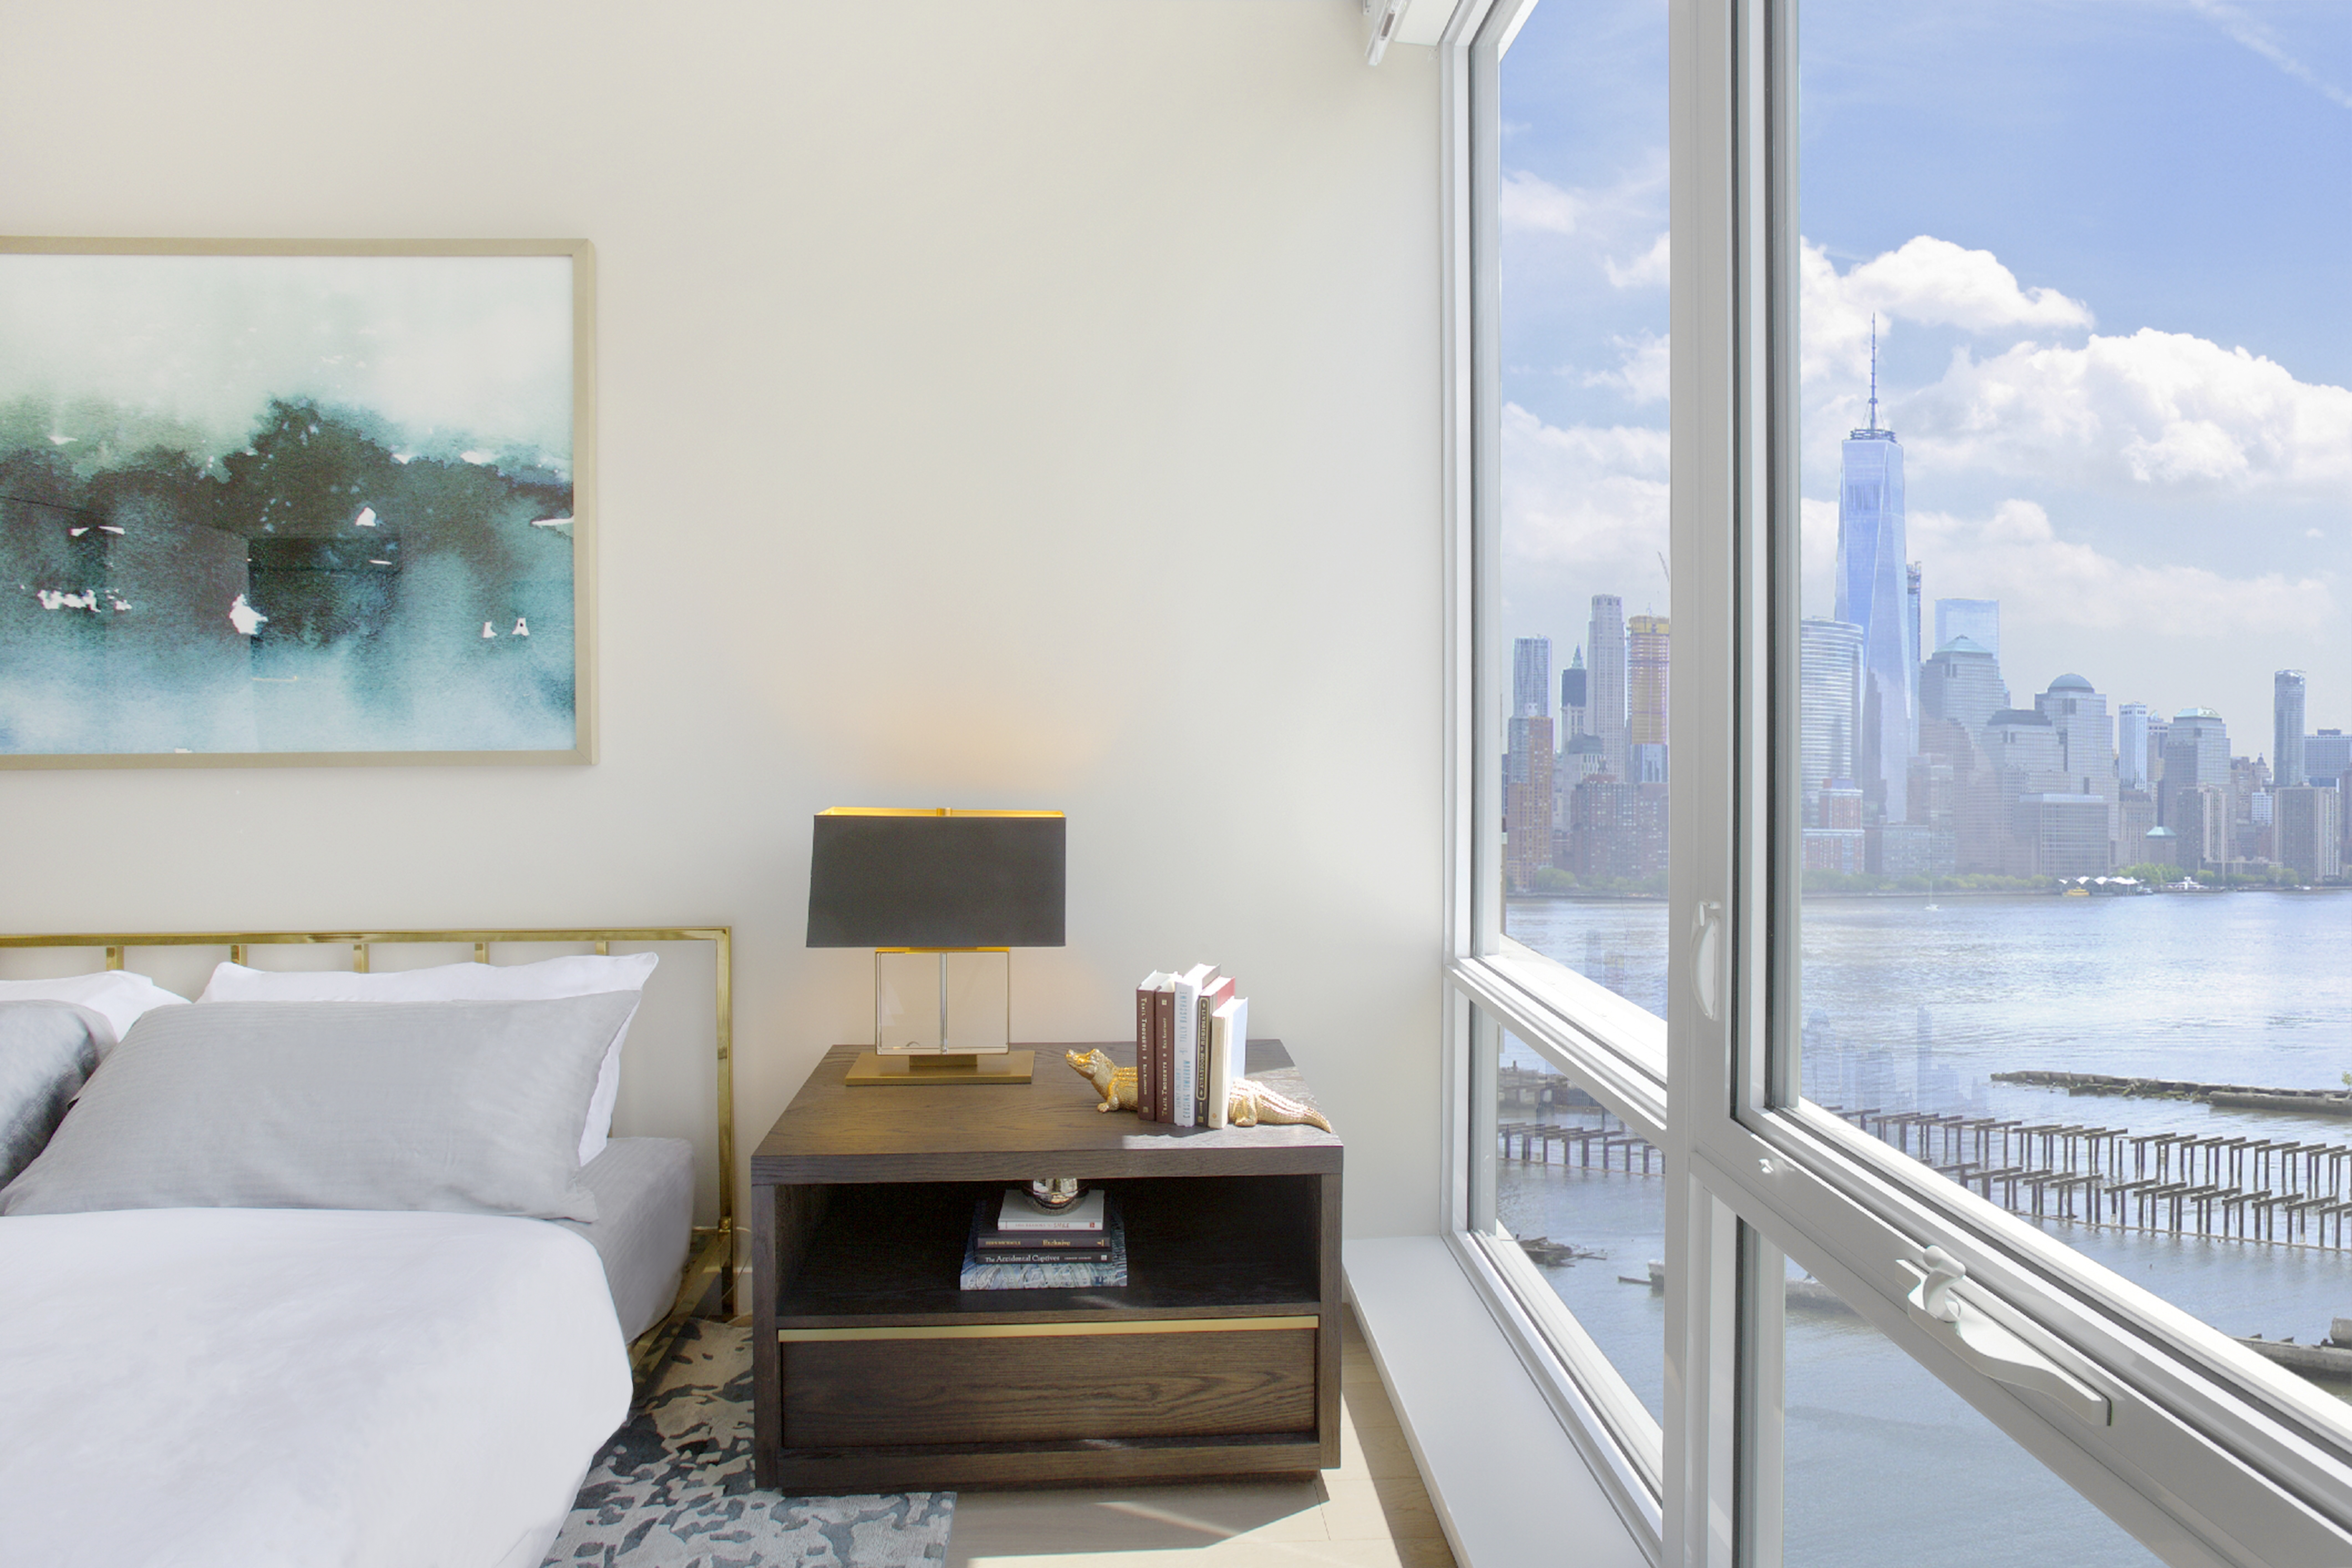 Peek Inside Ellipse Jersey City 39 S 39 Elevated 39 Waterfront Rentals Curbed Ny